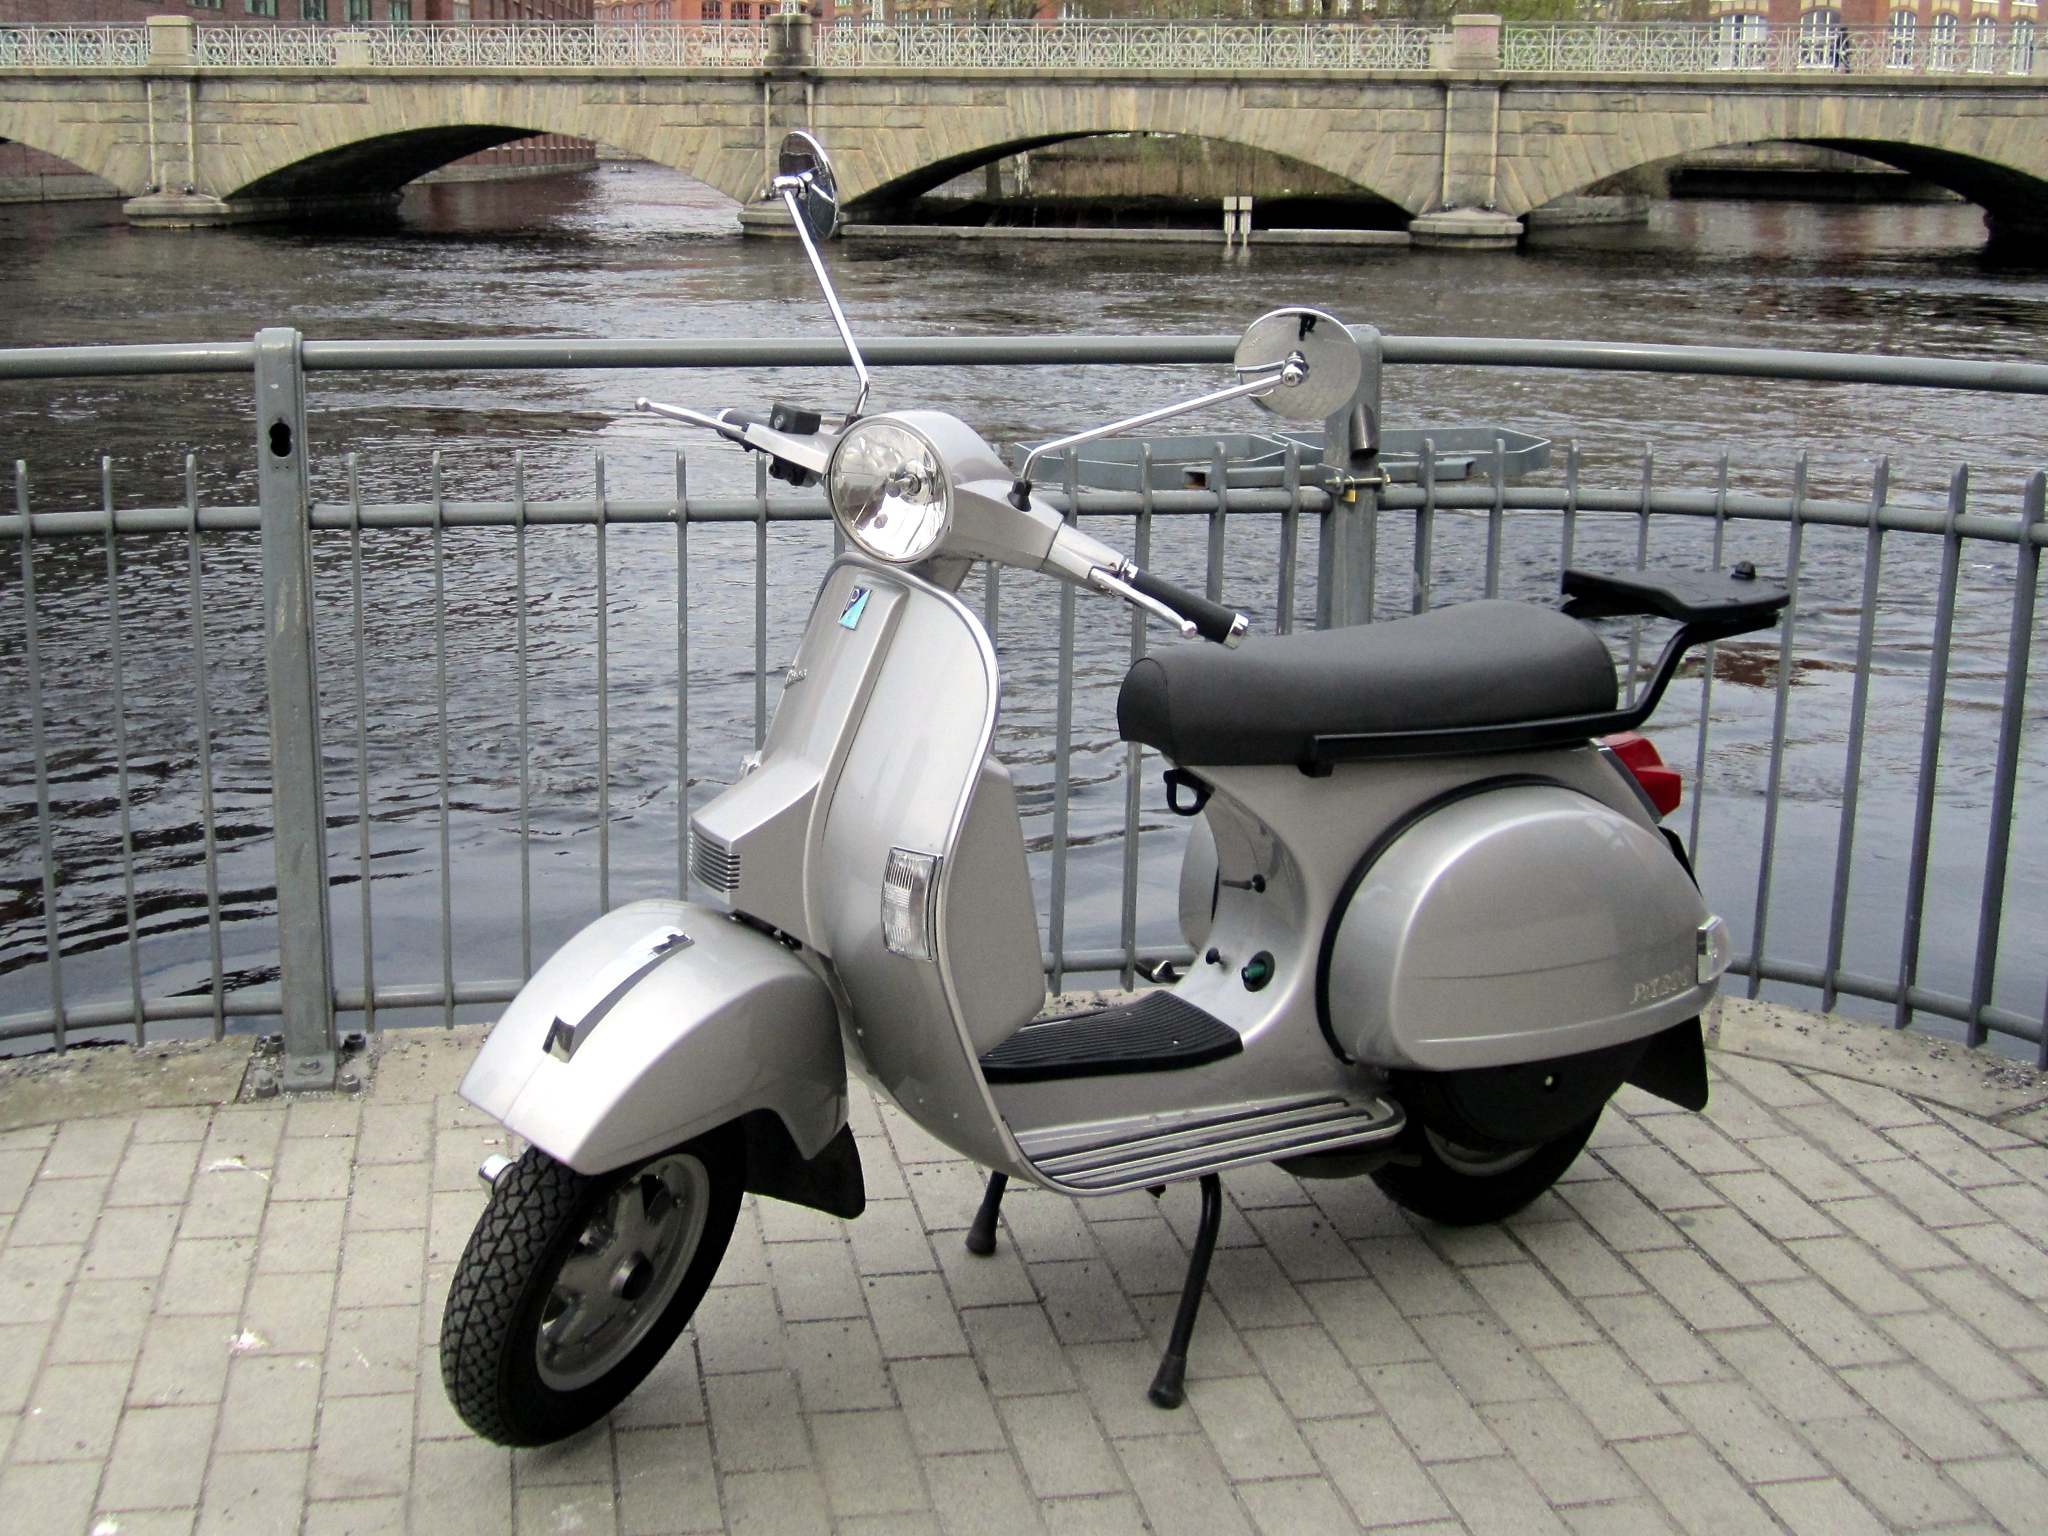 file piaggio vespa px200 tampere finland 2 jpg wikimedia commons. Black Bedroom Furniture Sets. Home Design Ideas